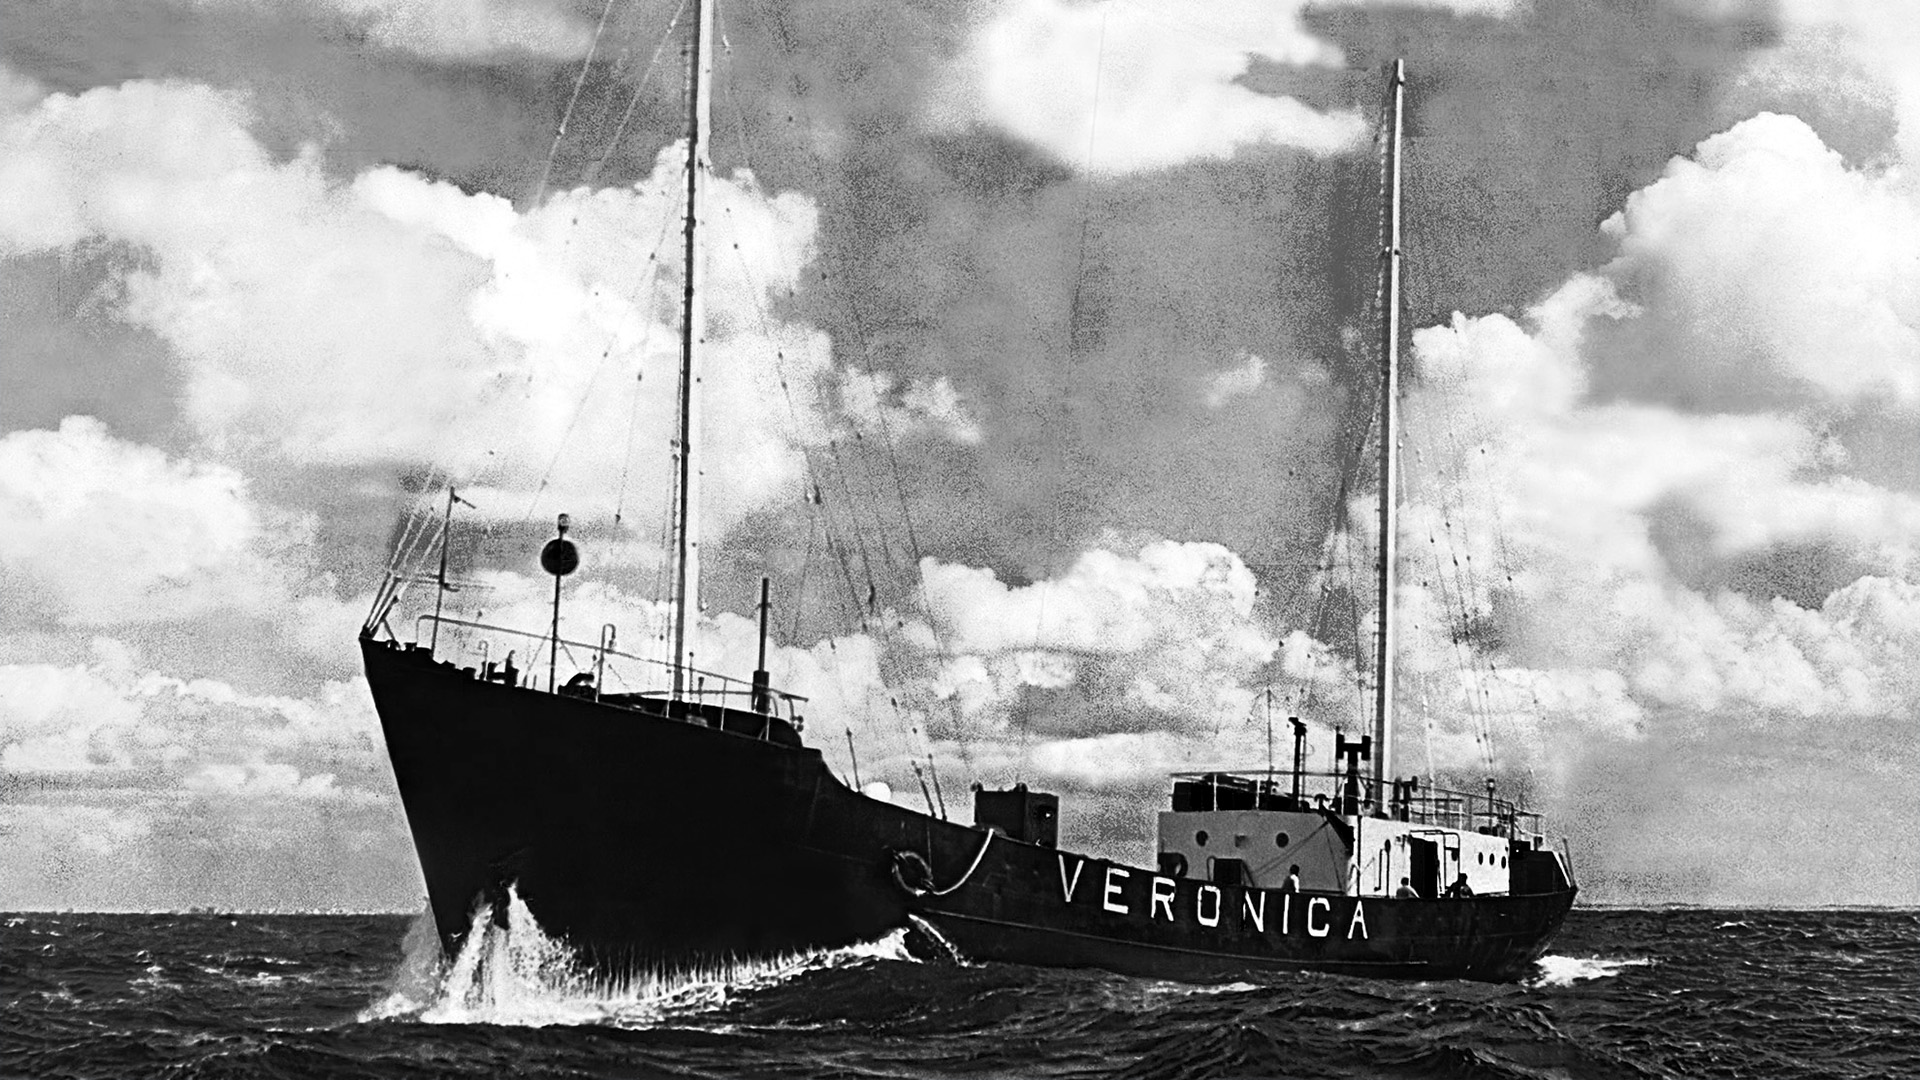 Veronica Ship veronica caperock redesign rebrand channel design  dutch tv blockbuster media branding